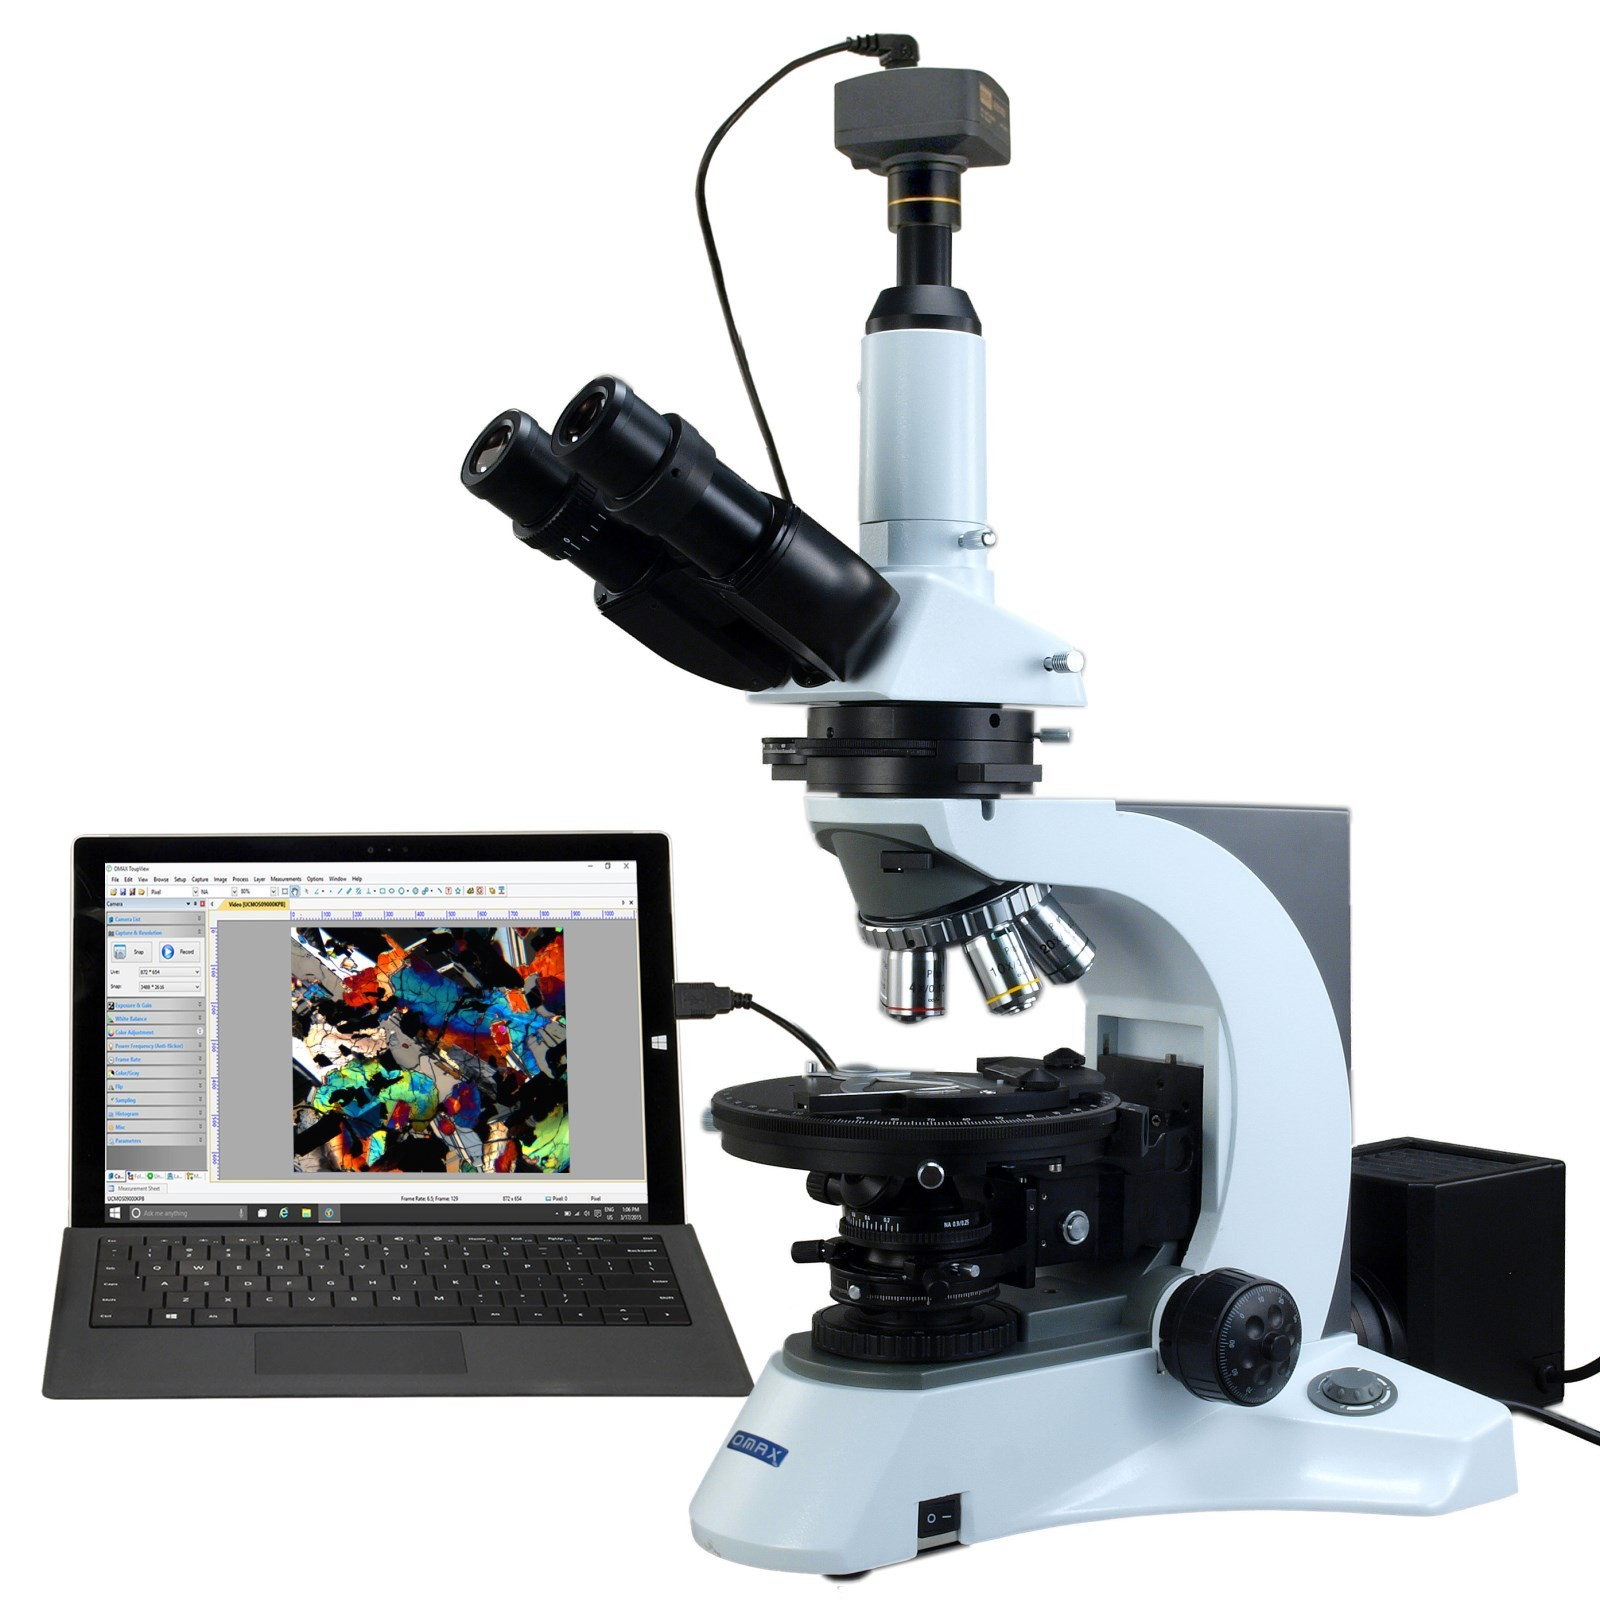 OMAX 40X-1000X PLAN Trinocular Infinity Polarizing Microscope with 14MP Digital Camera